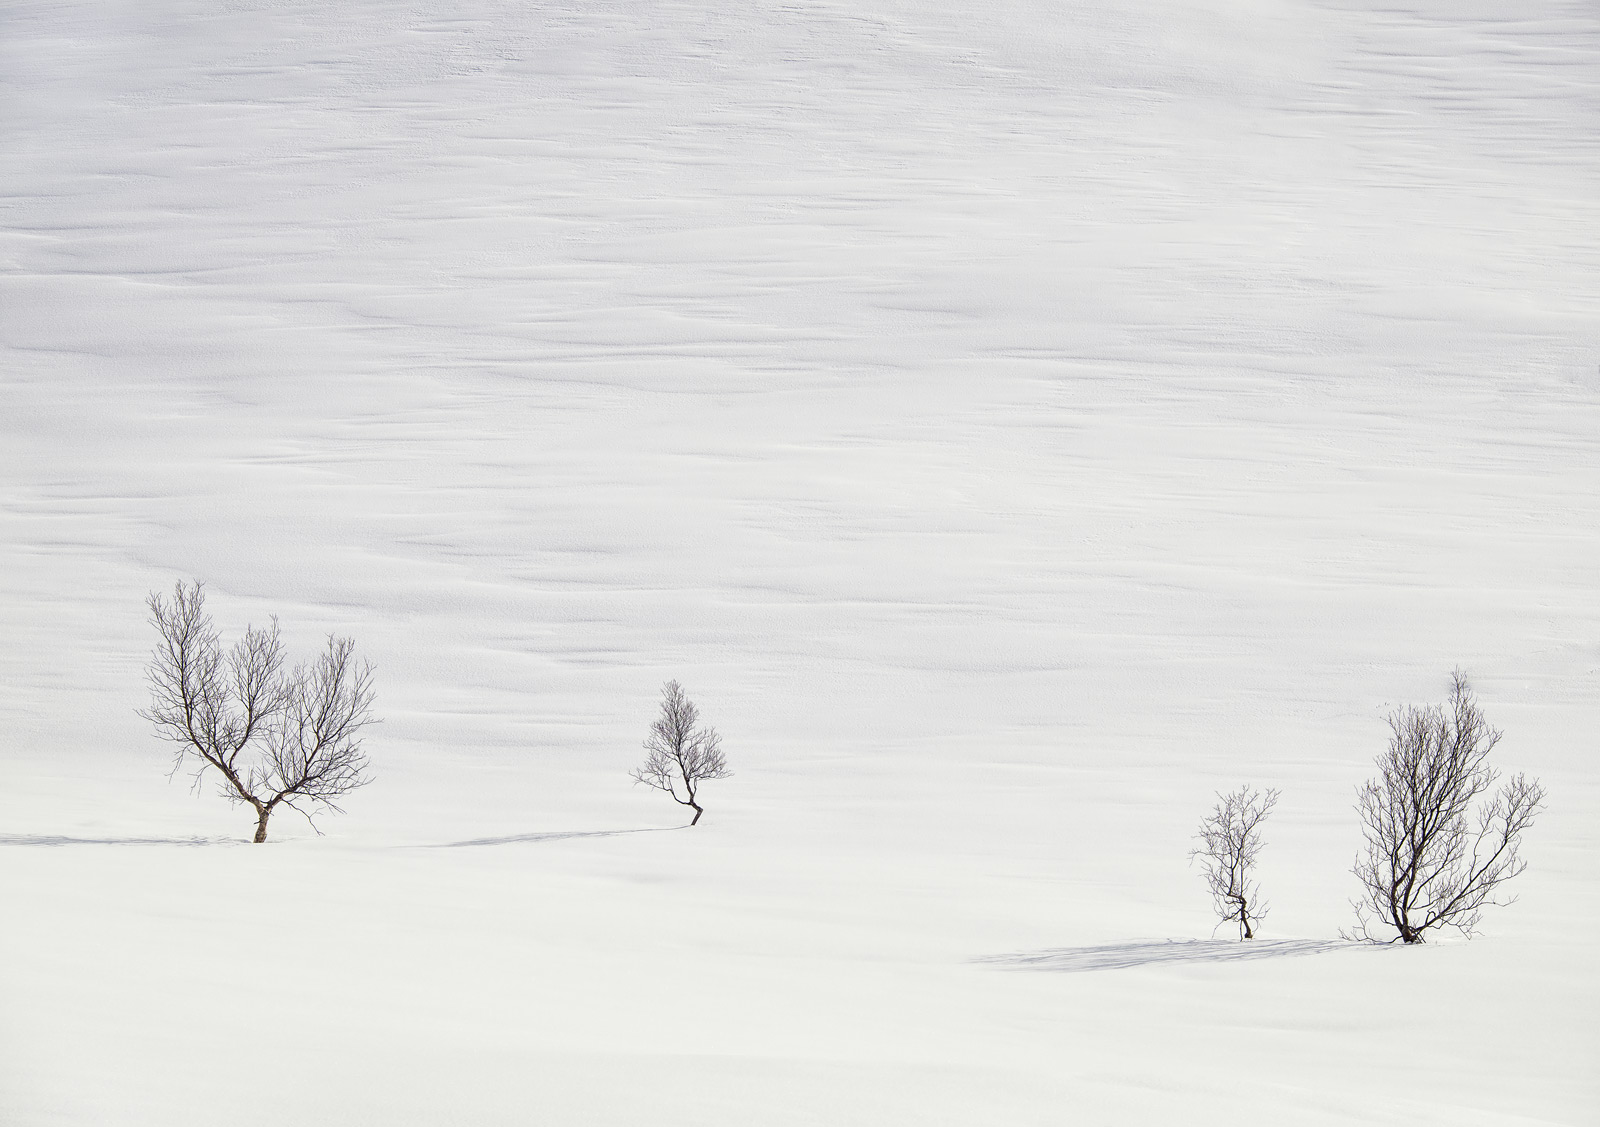 Art Of Snow 5, Anderdalen Nat Park, Senja, Norway, high key, mountainous, plateau, winter, purity, birch, trees, purity,, photo